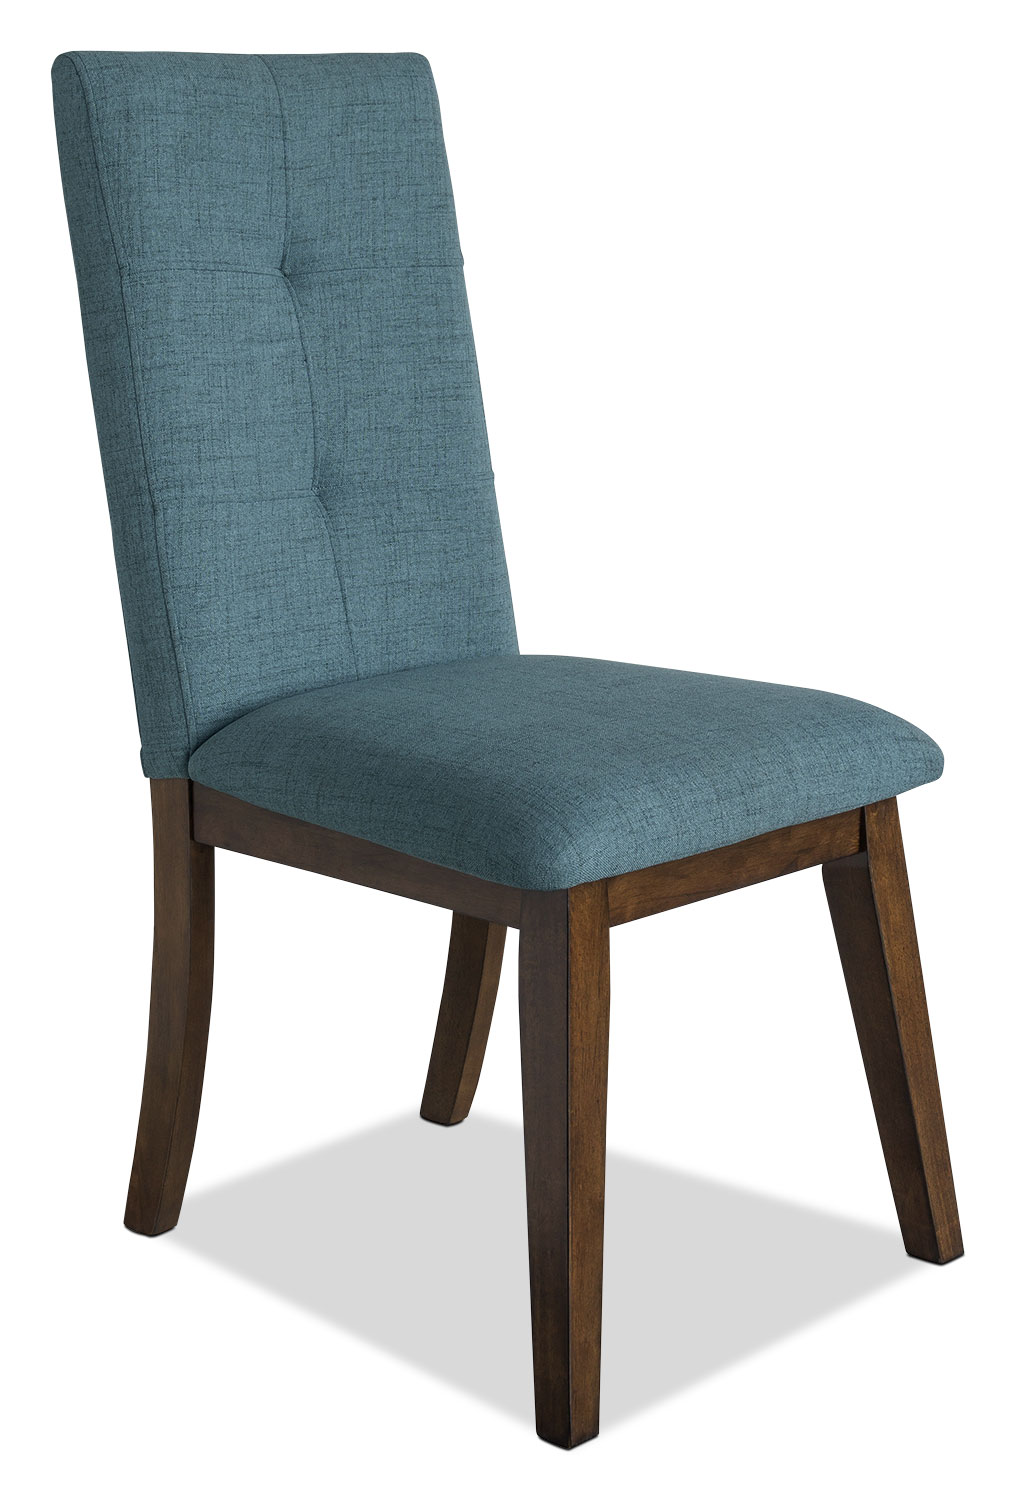 Chelsea 5 Piece Dining Package With Aqua Chairs The Brick